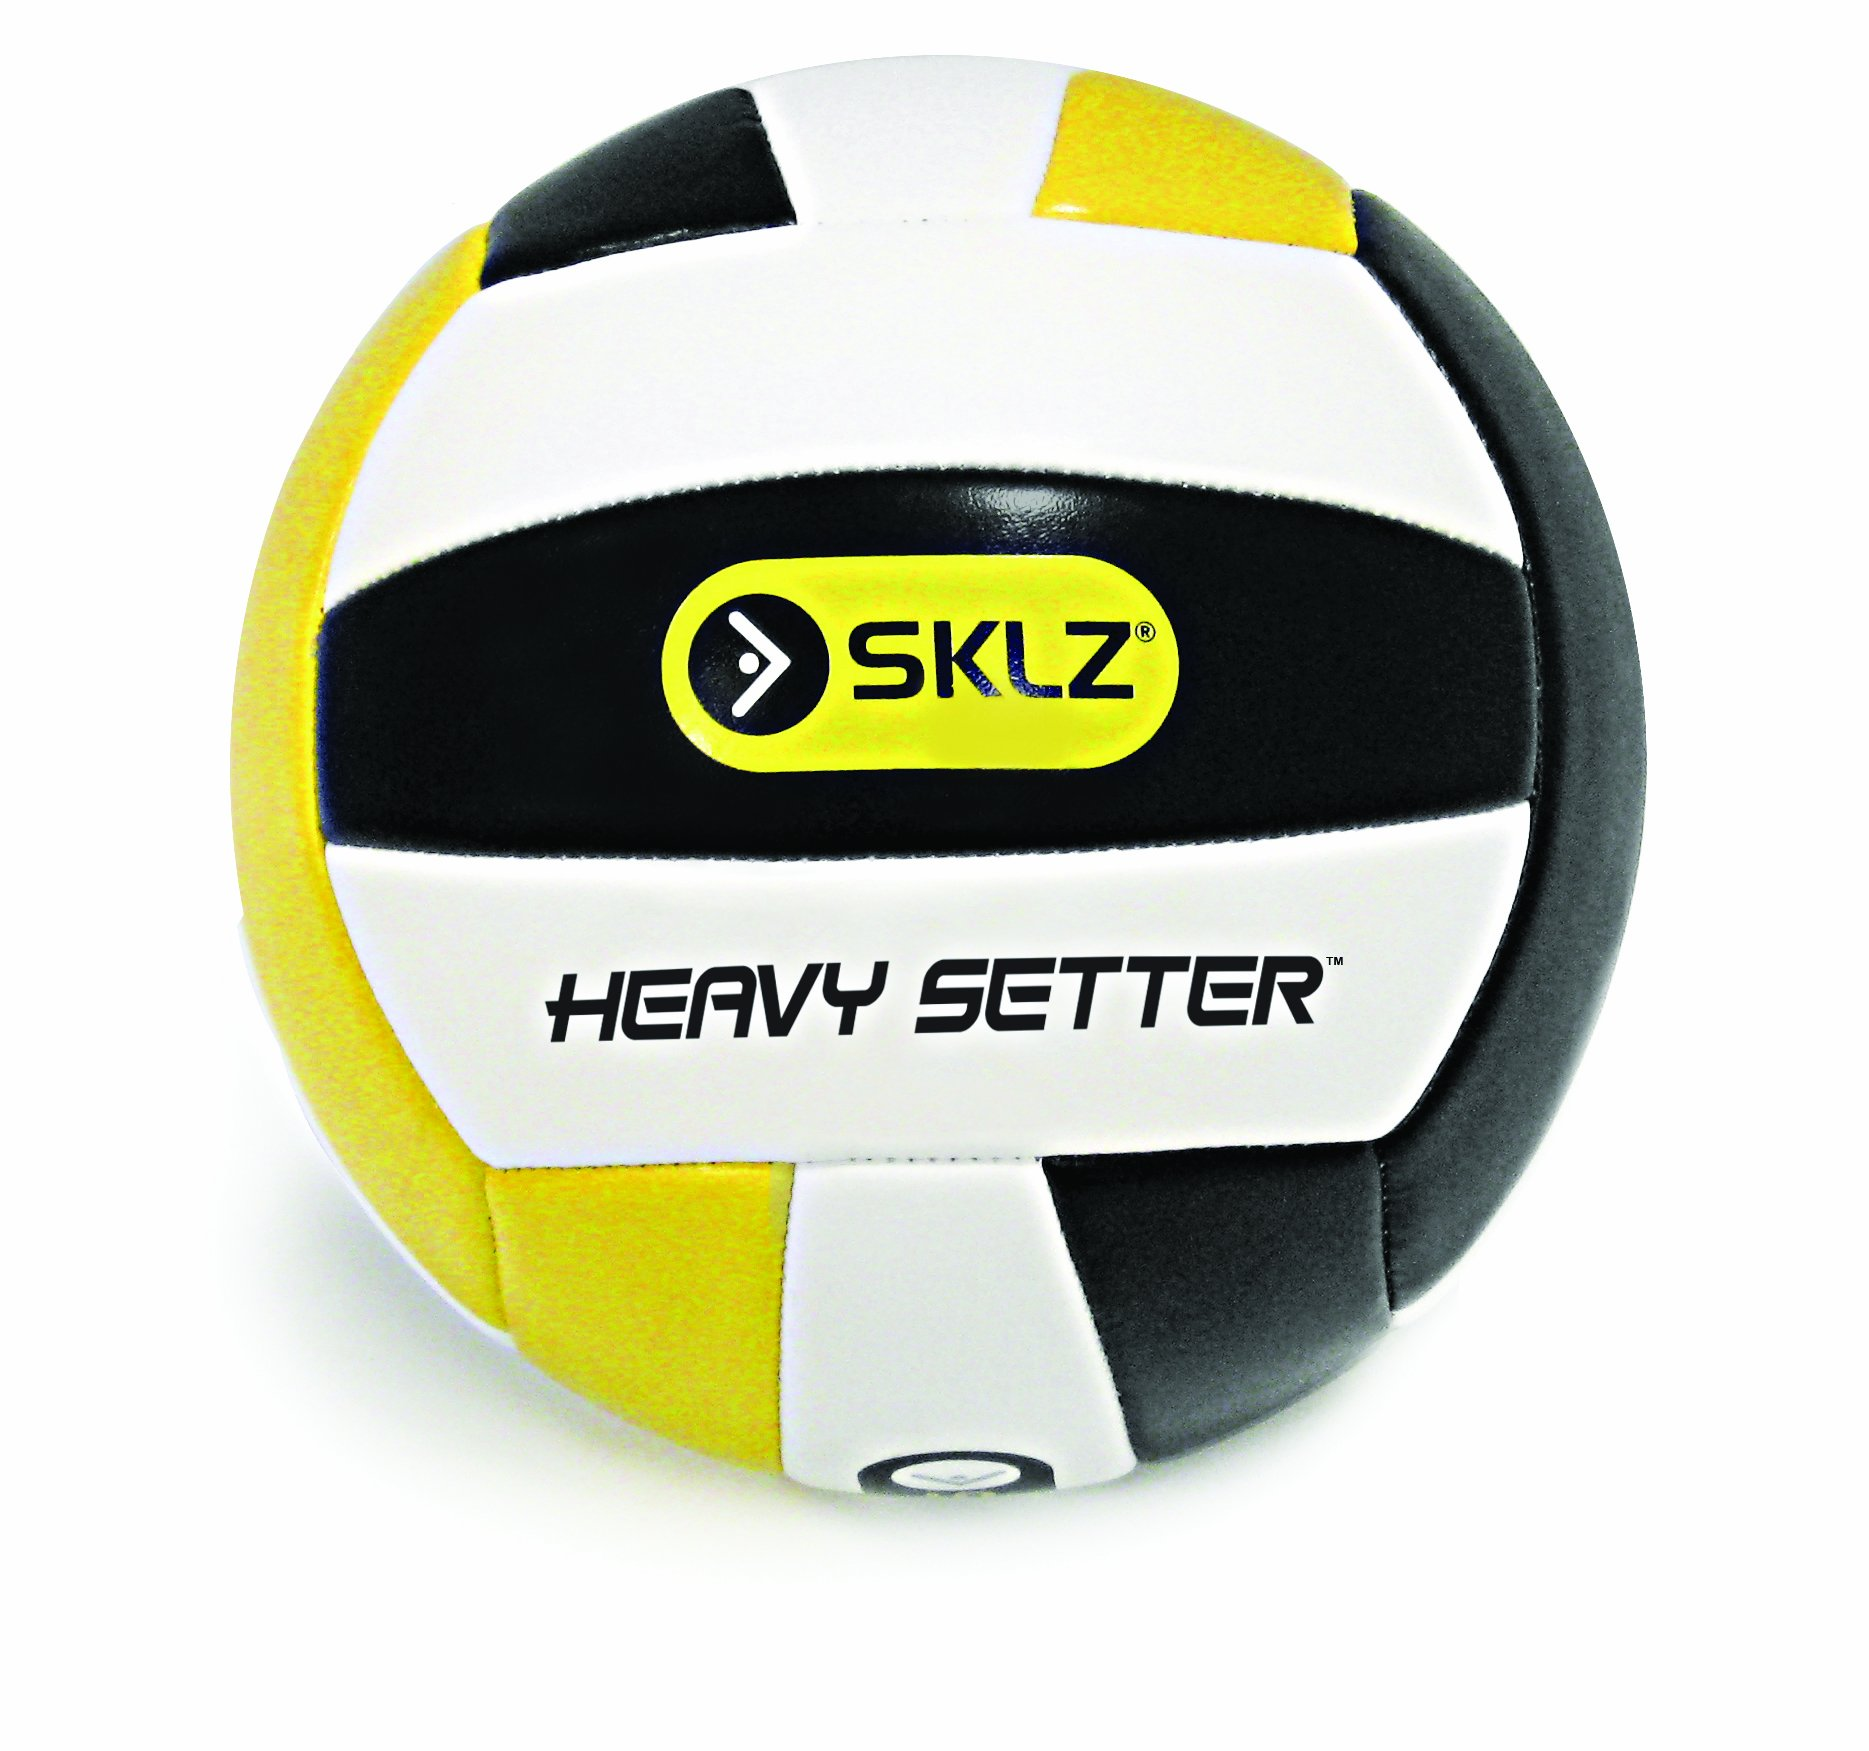 SKLZ Heavy Setter Weighted Volleyball Trainer